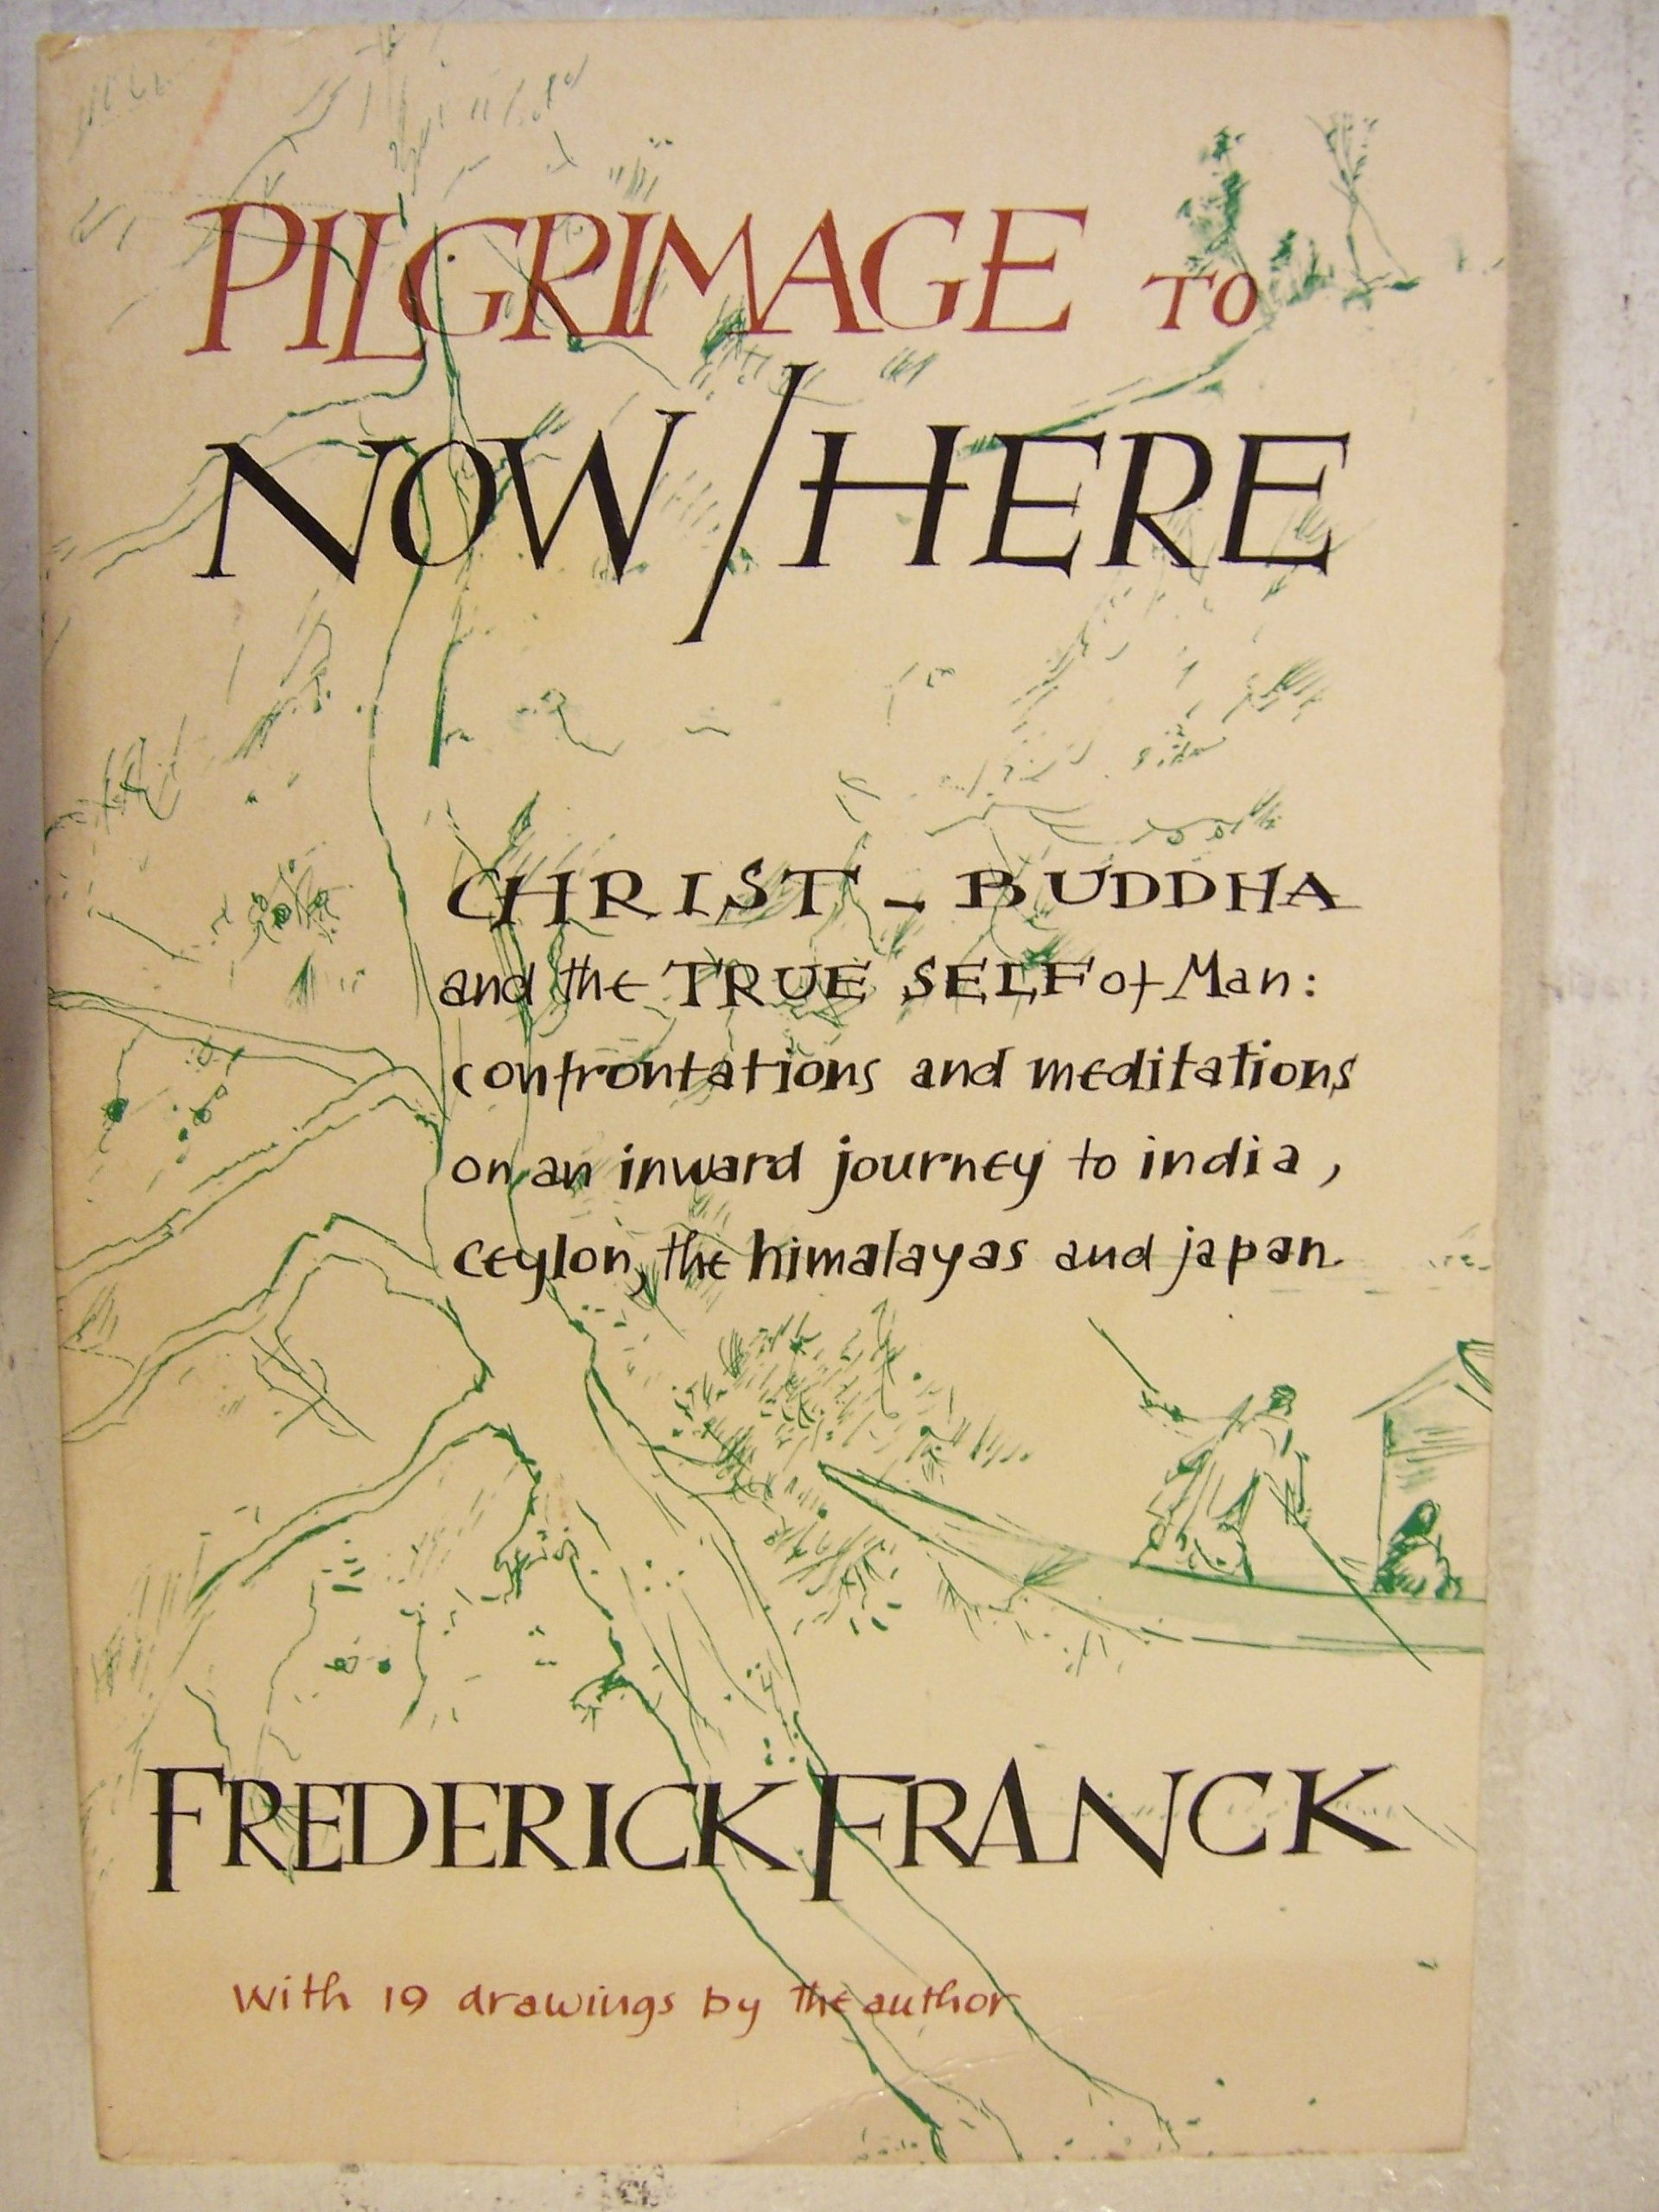 Pilgrimage to Now / Here: Christ Buddha and the True Self of Man, Confrontations and Meditations on an Inward Journey to India, Ceylon, the Himalayas and Japan